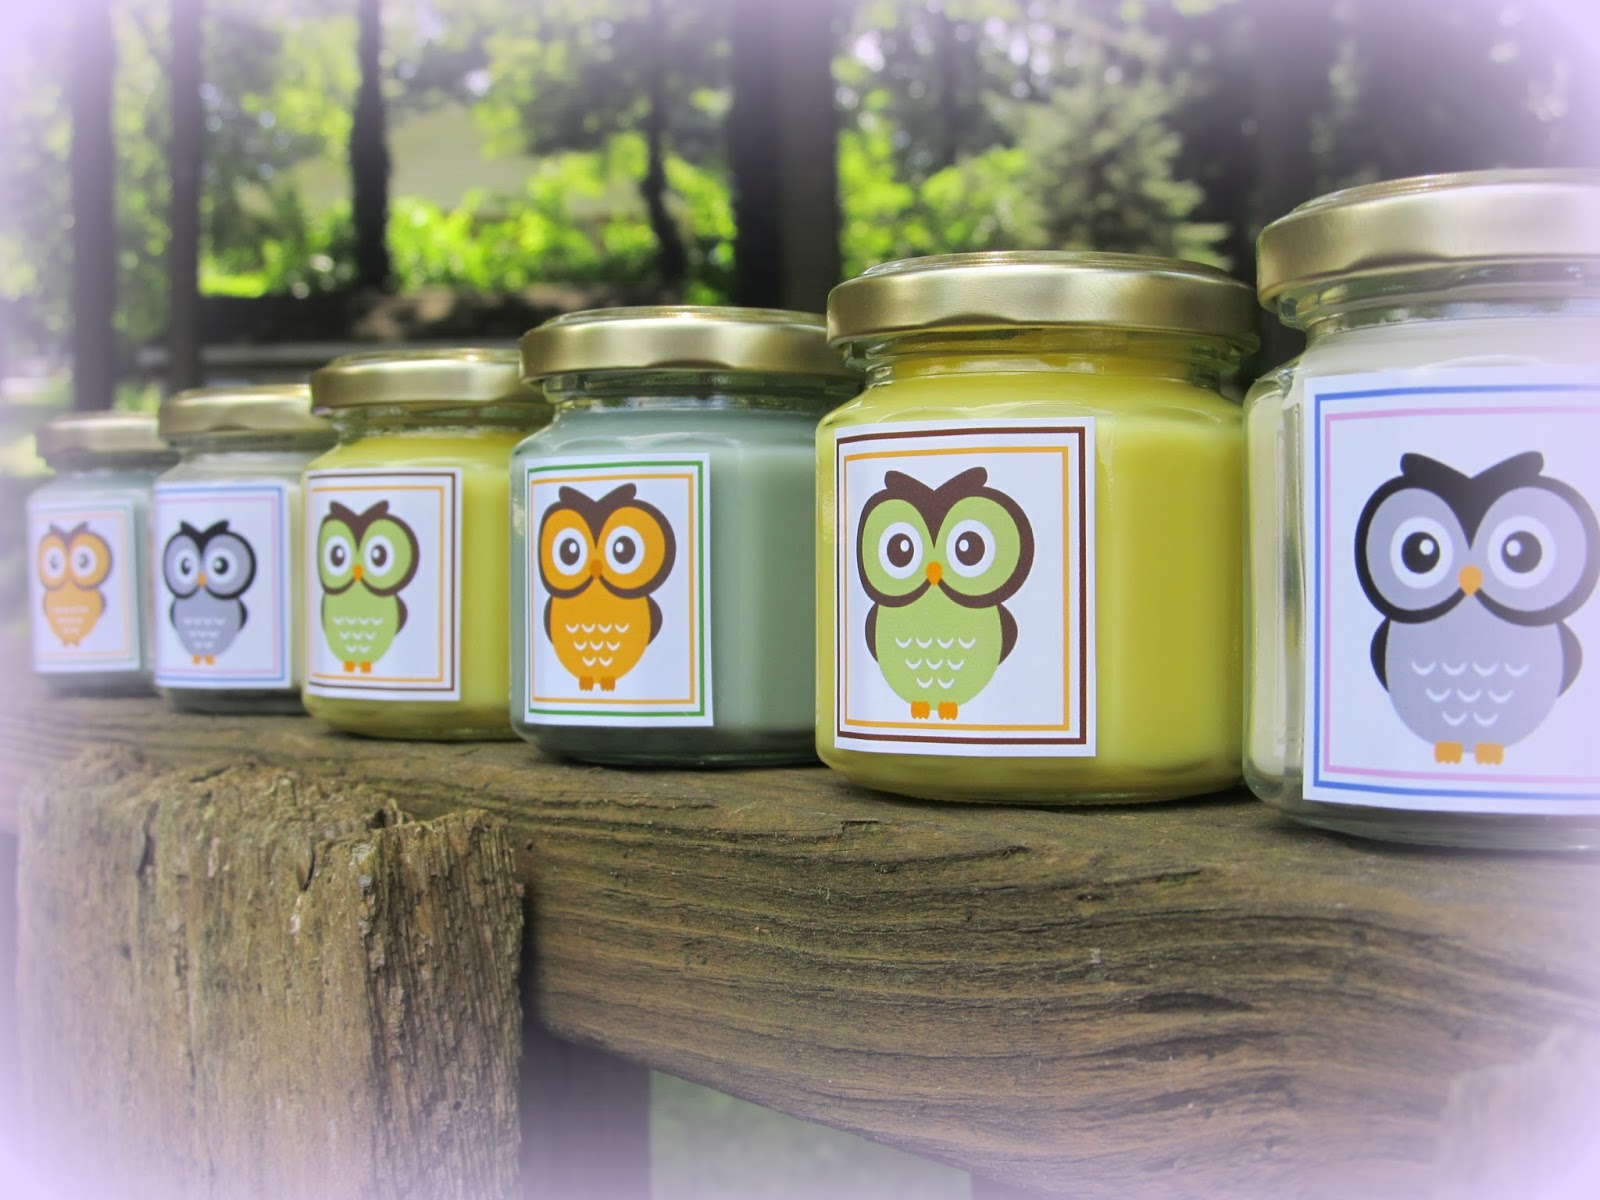 hospitality lane baby shower favors this time in owl theme